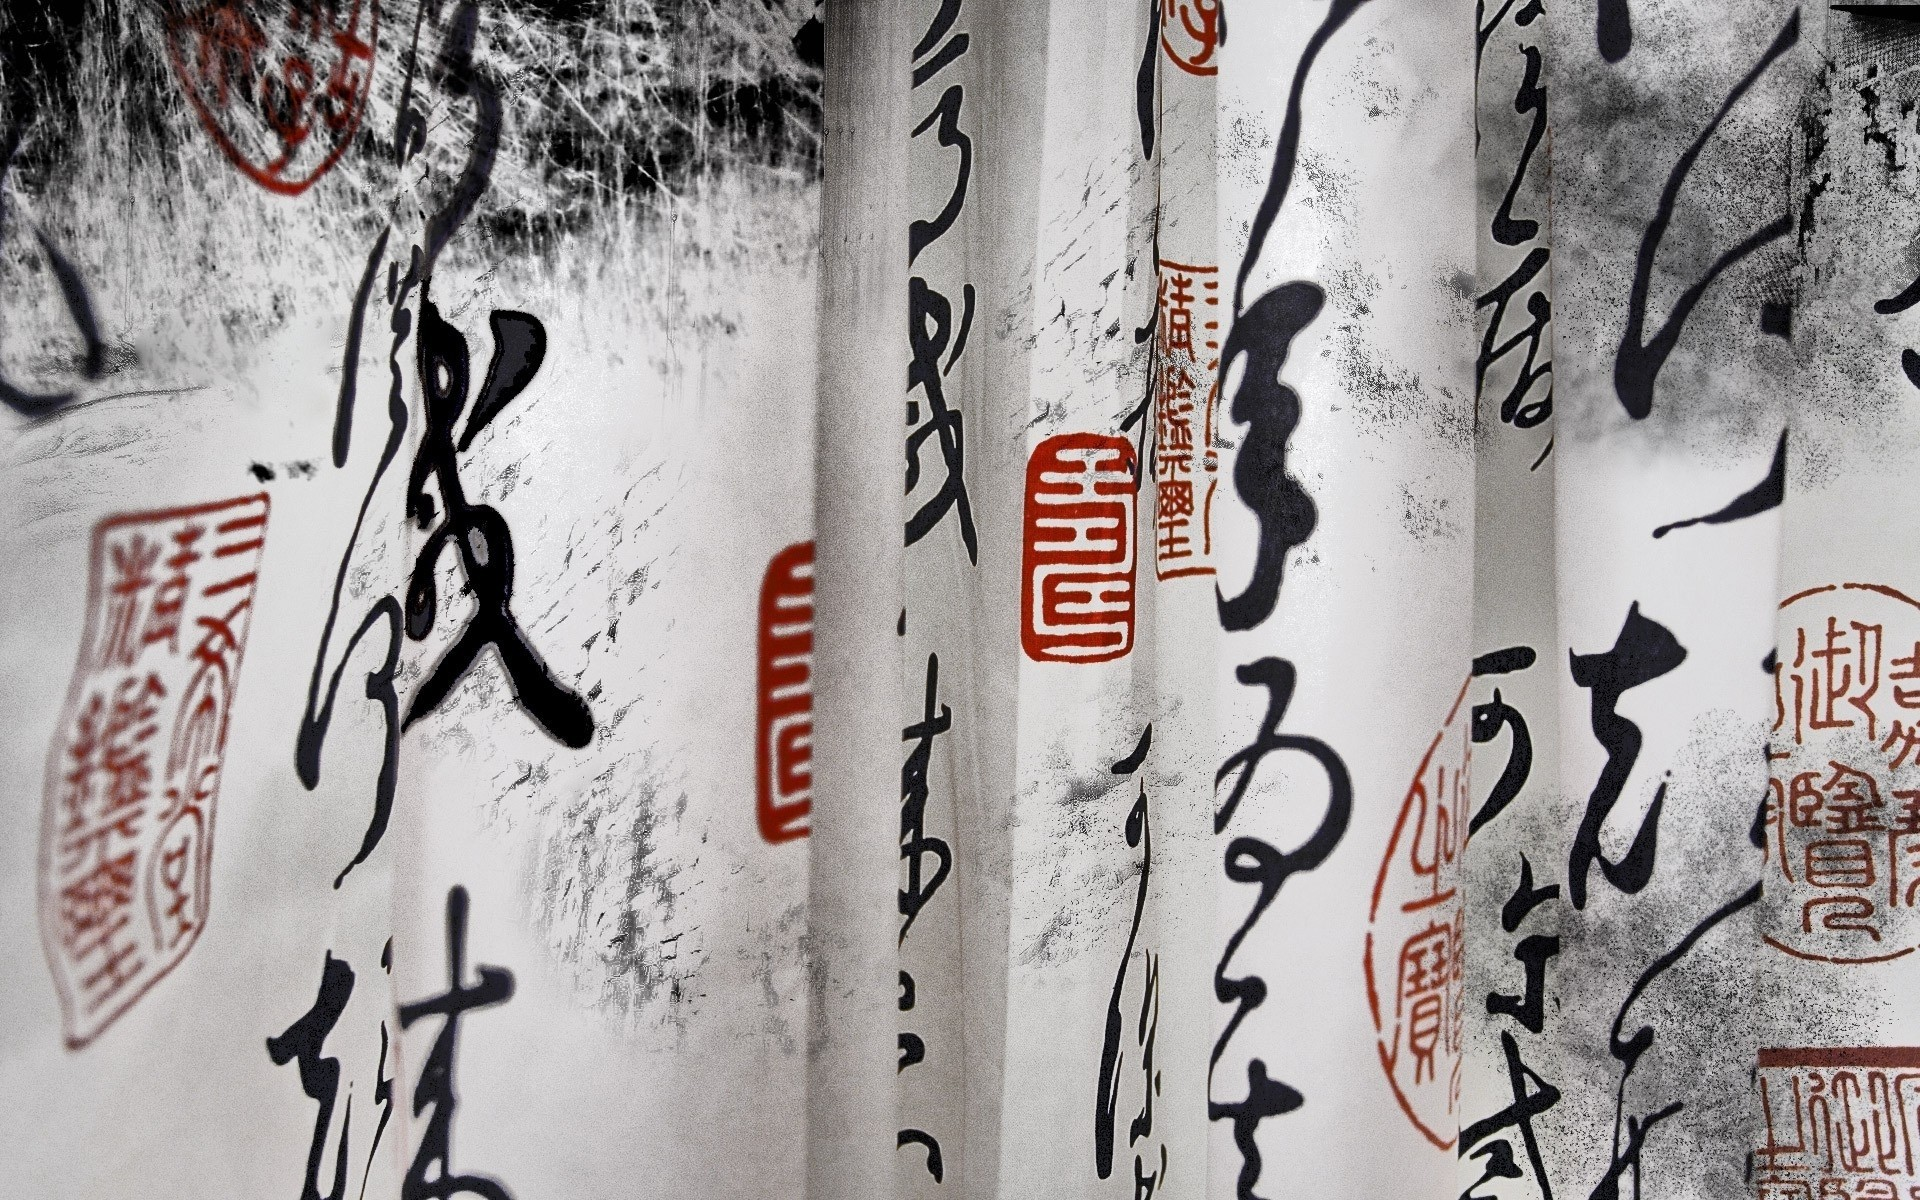 Chinese Scrolls Happiness mood emotion characters calligraphy asian  oriental paper wallpaper     27203   WallpaperUP